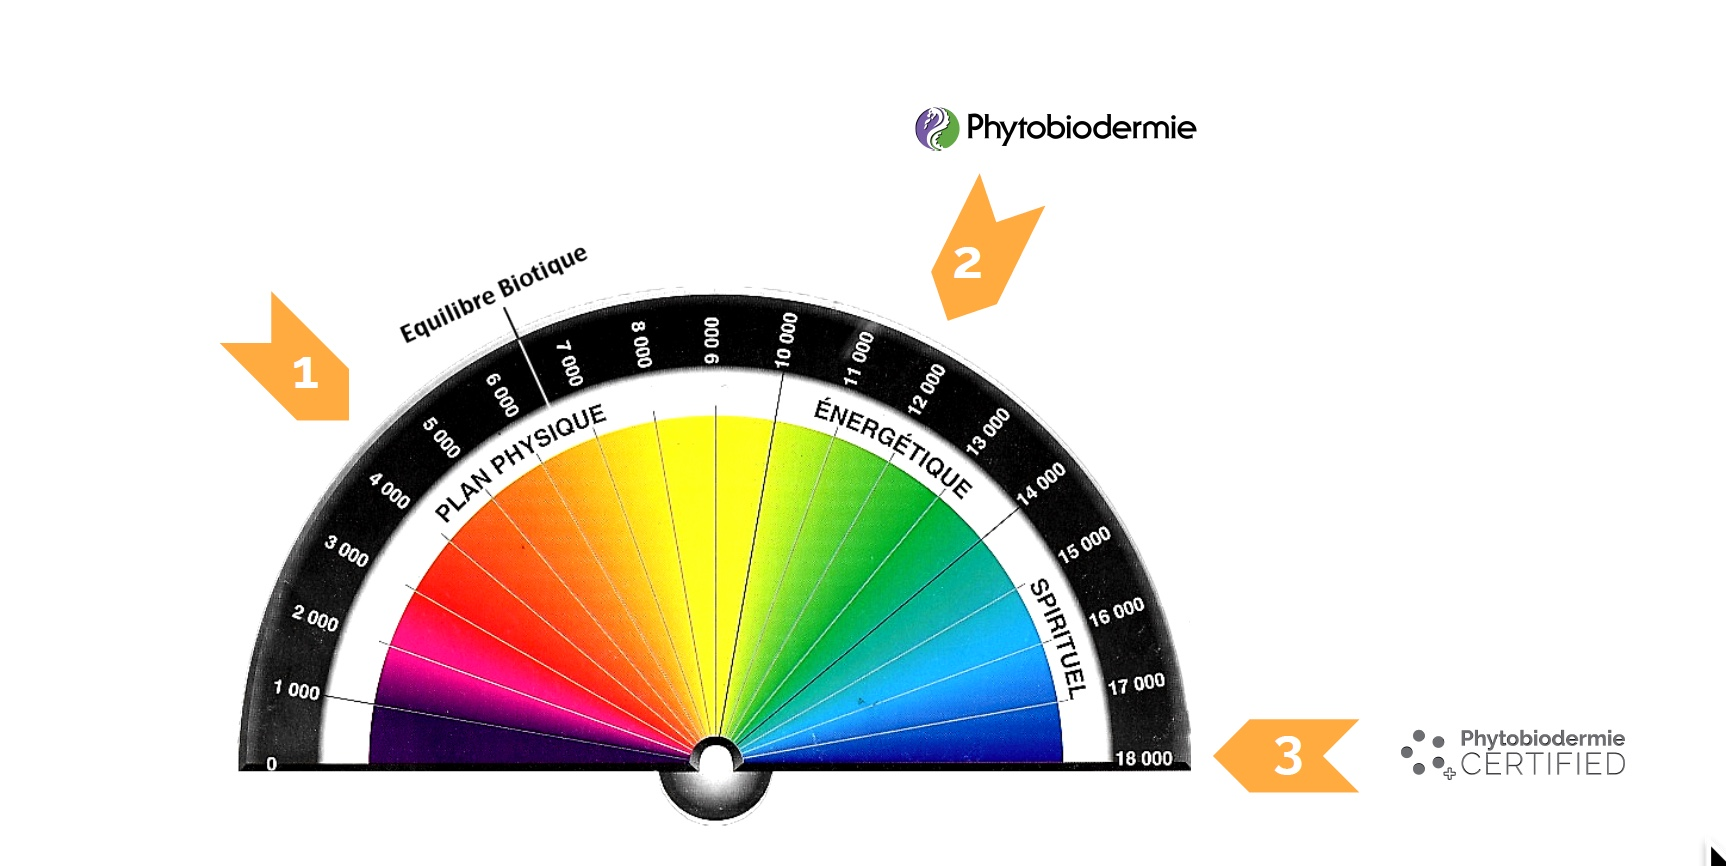 A picture of the Bovis scale applied to PHYTO5 (Phytobiodermie) quantum energetic skincare registering at the highest level for this scales